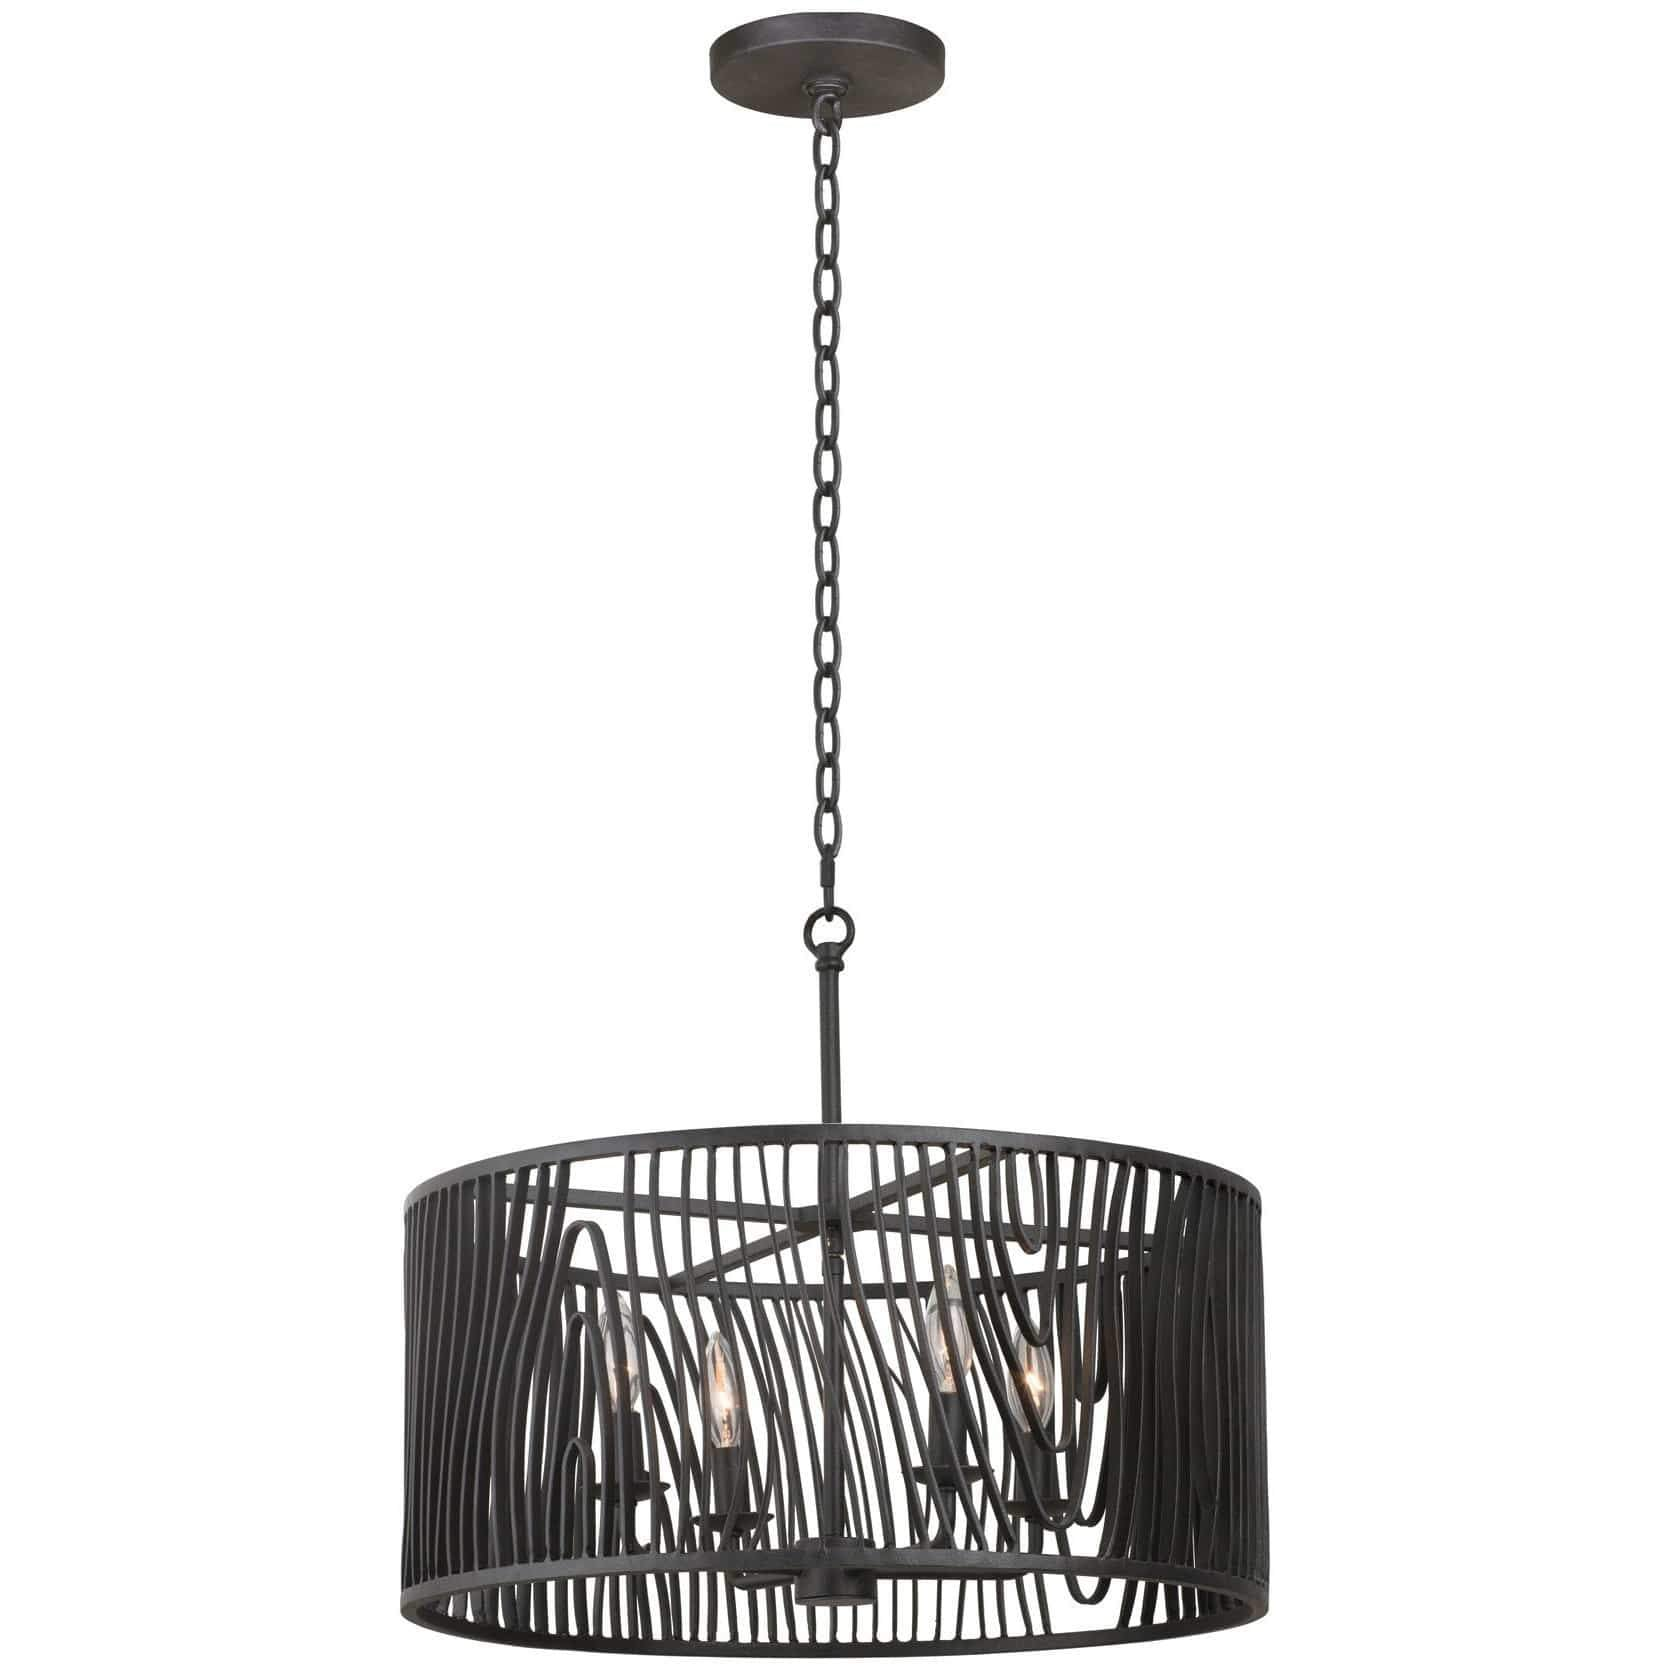 Kalco Lighting Dual Mounts Black Iron Morre 21 Inch Convertible Pendant / Semi Flush By Kalco Lighting 507541